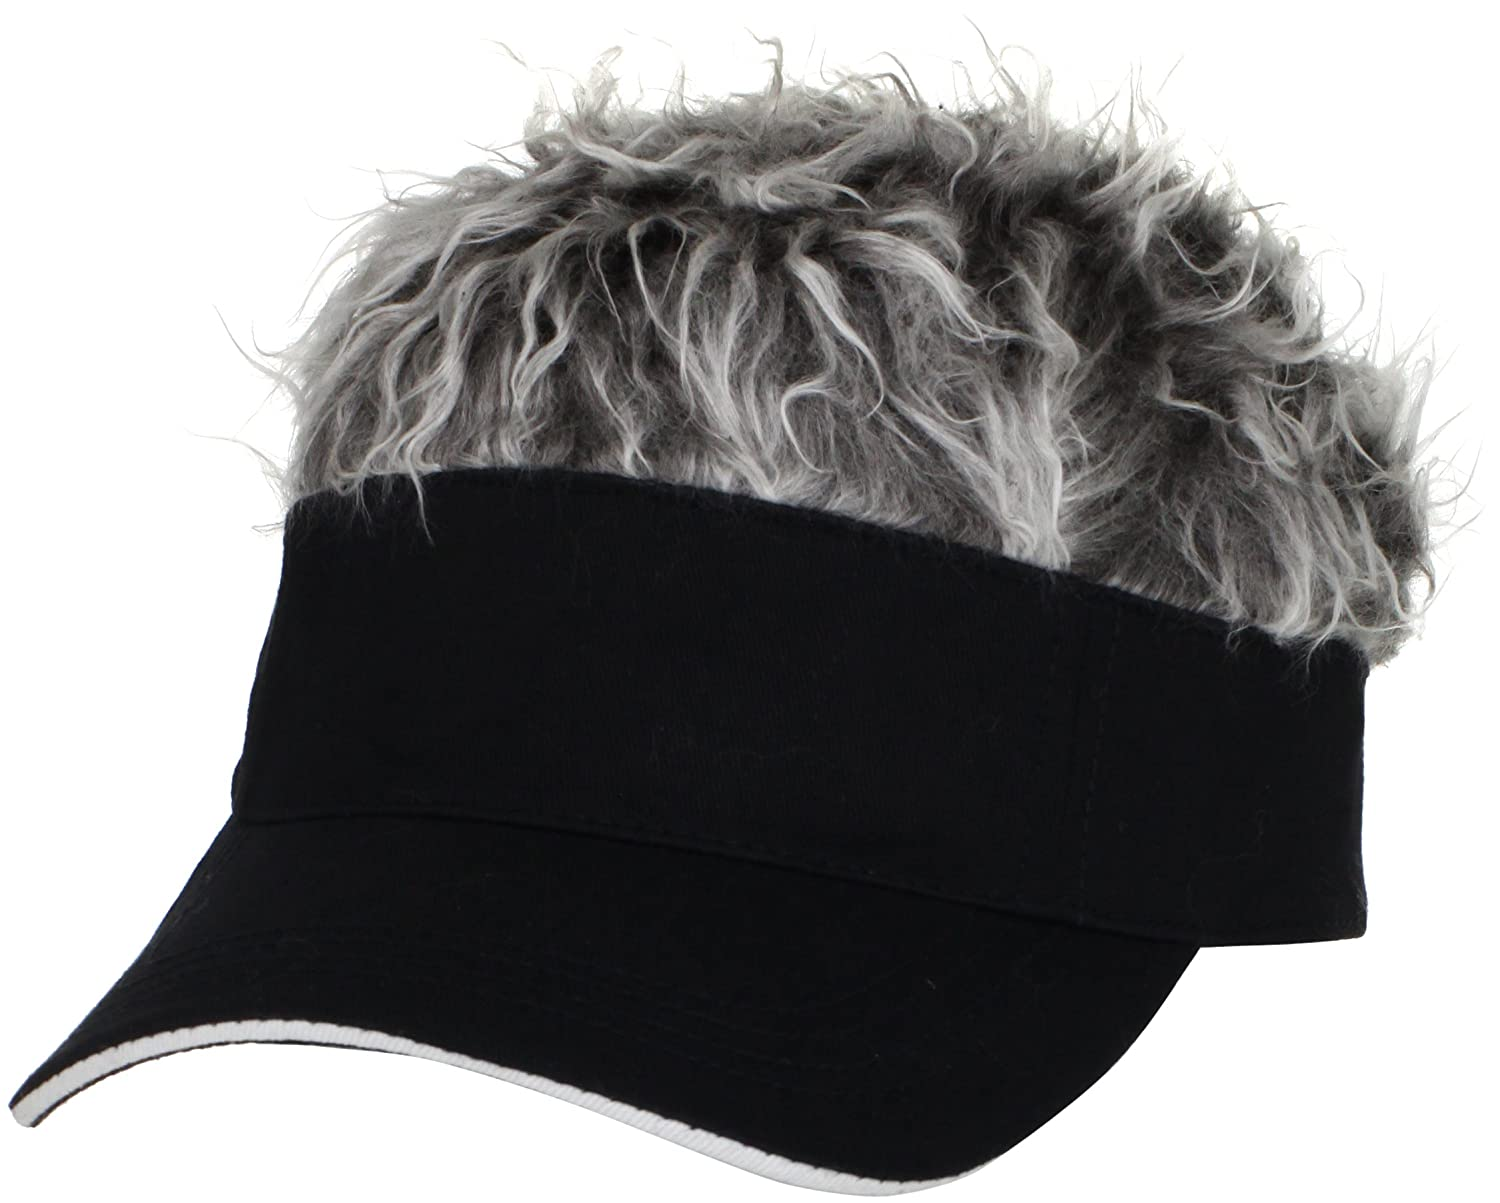 Flair Hair Original Visor, Grey Gift House International FHVSBG-Black/Grey